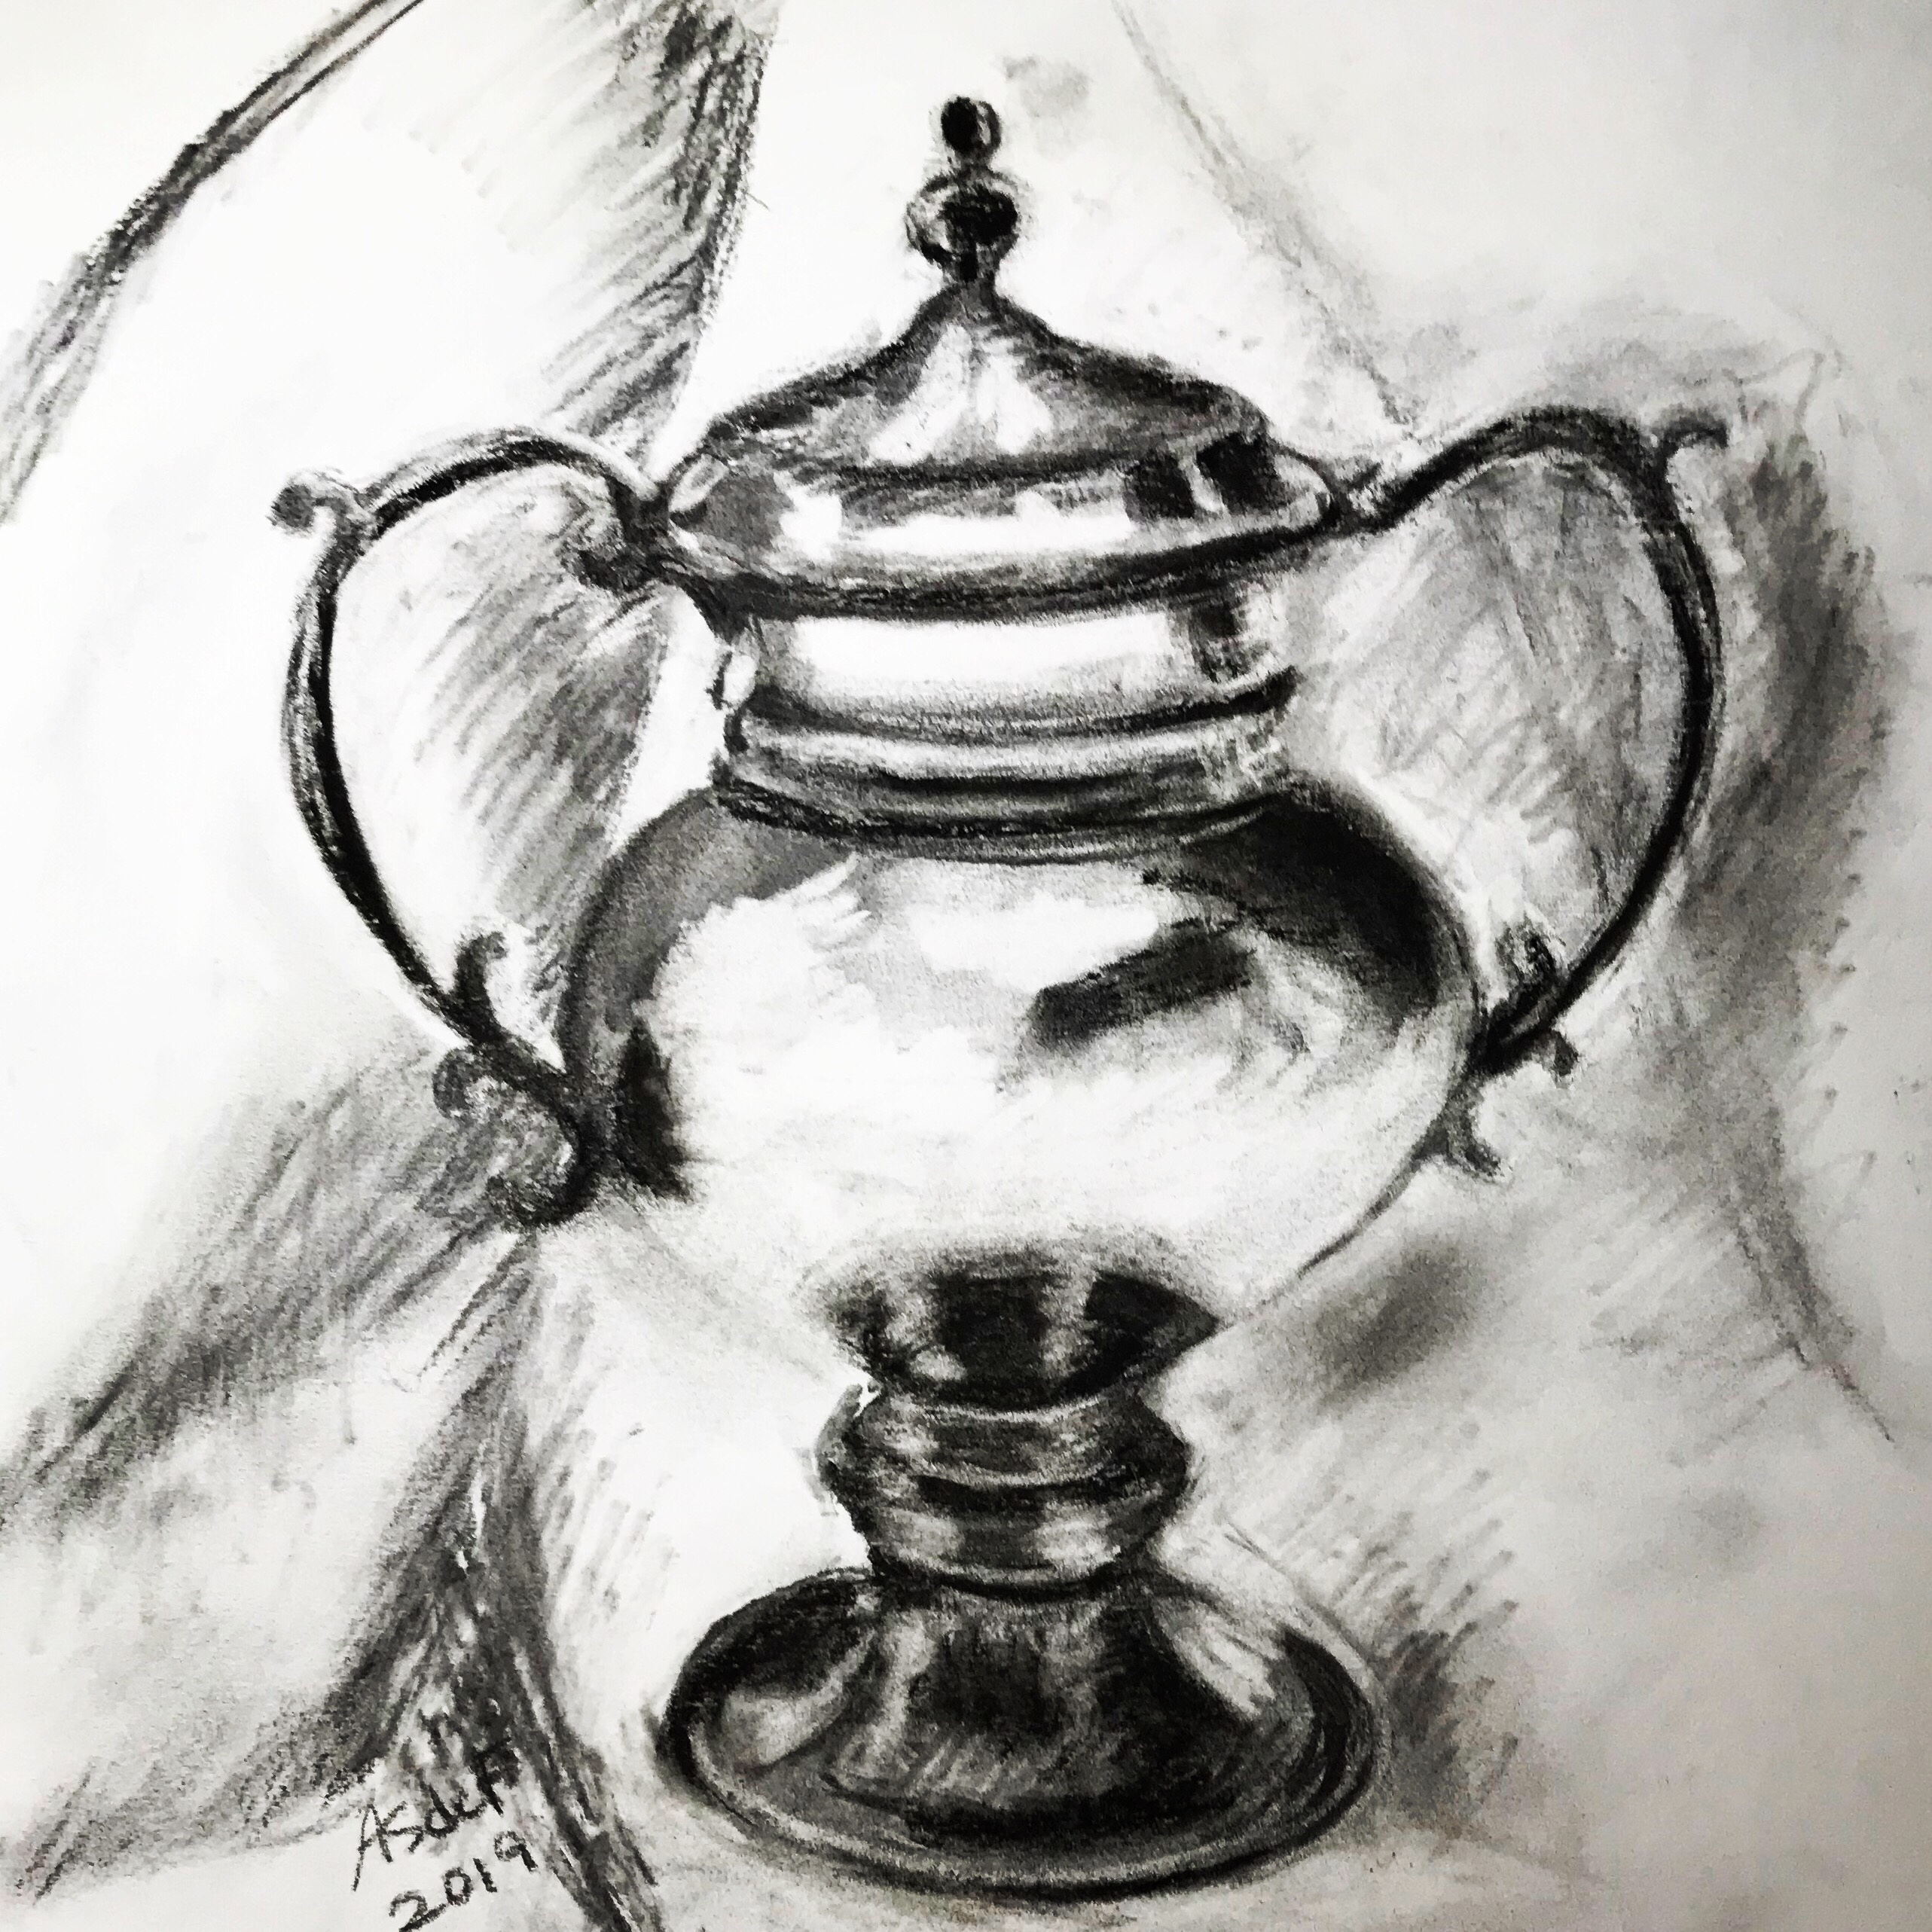 Silver vase drawing